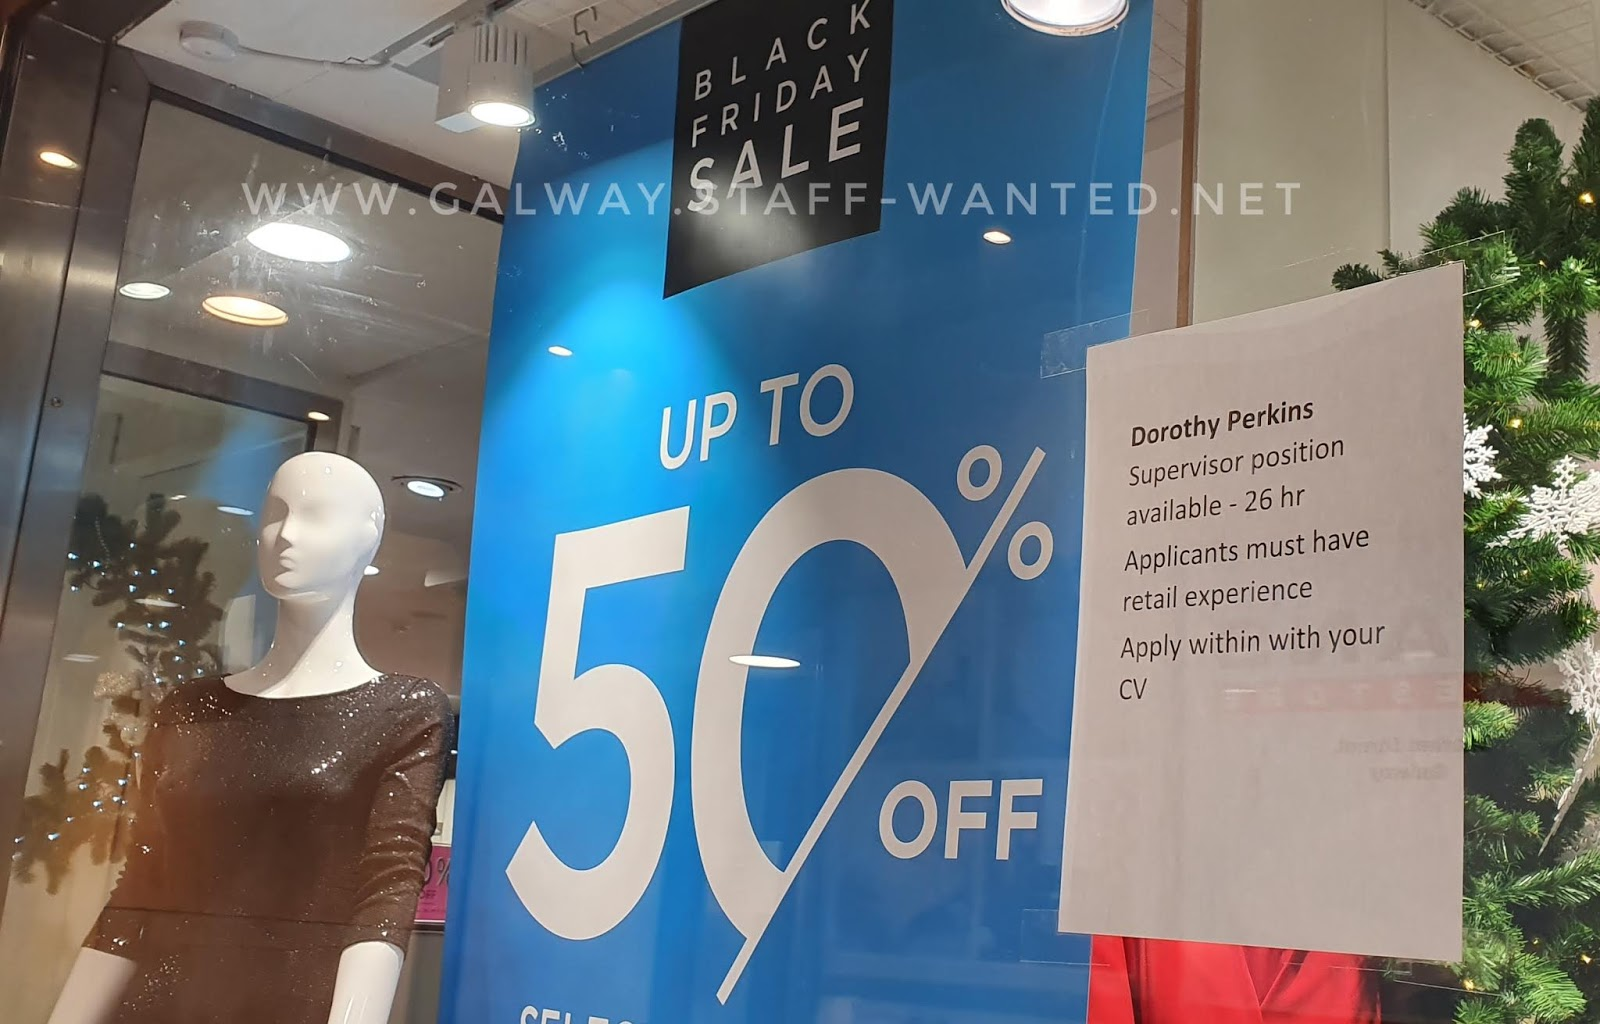 shop window with a job advertisement and two mannaquins (in a black and a red dress) and a Black Friday 50% off sign, with the zer on 50 being half-cut-off with part of a percentage discount sign